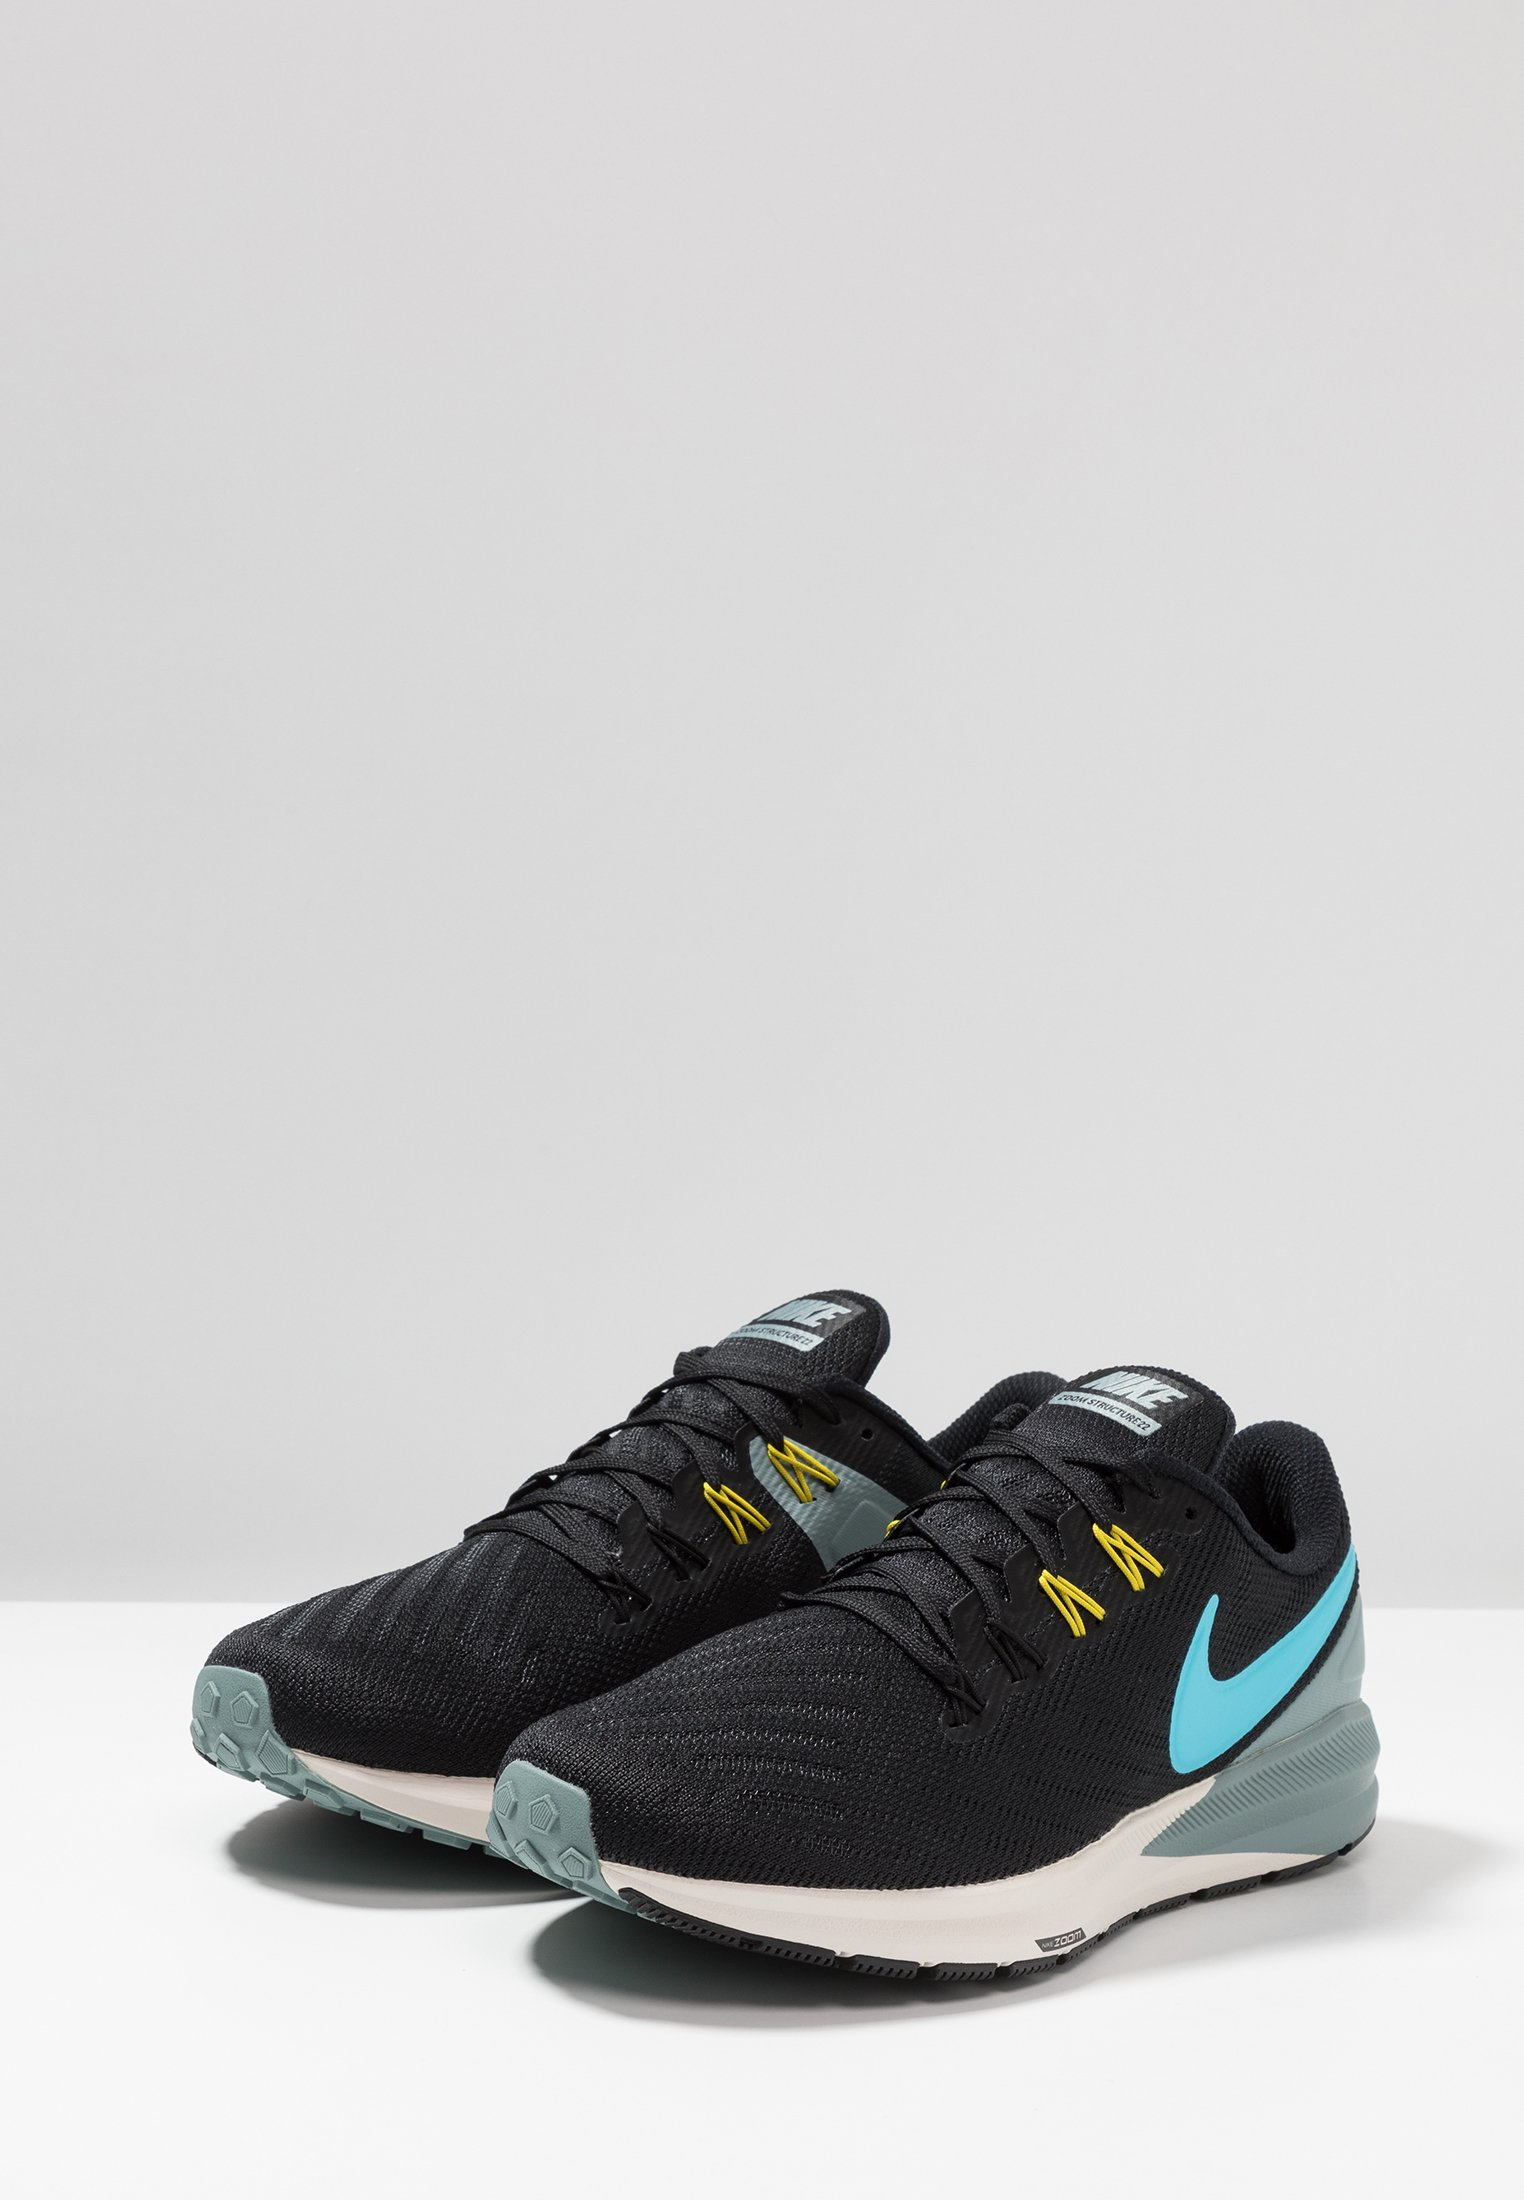 aviator blue Citron Running Performance Fury Stables Orewood Air Zoom De bright light StructureChaussures Black Grey Nike Brown v0wN8nmO